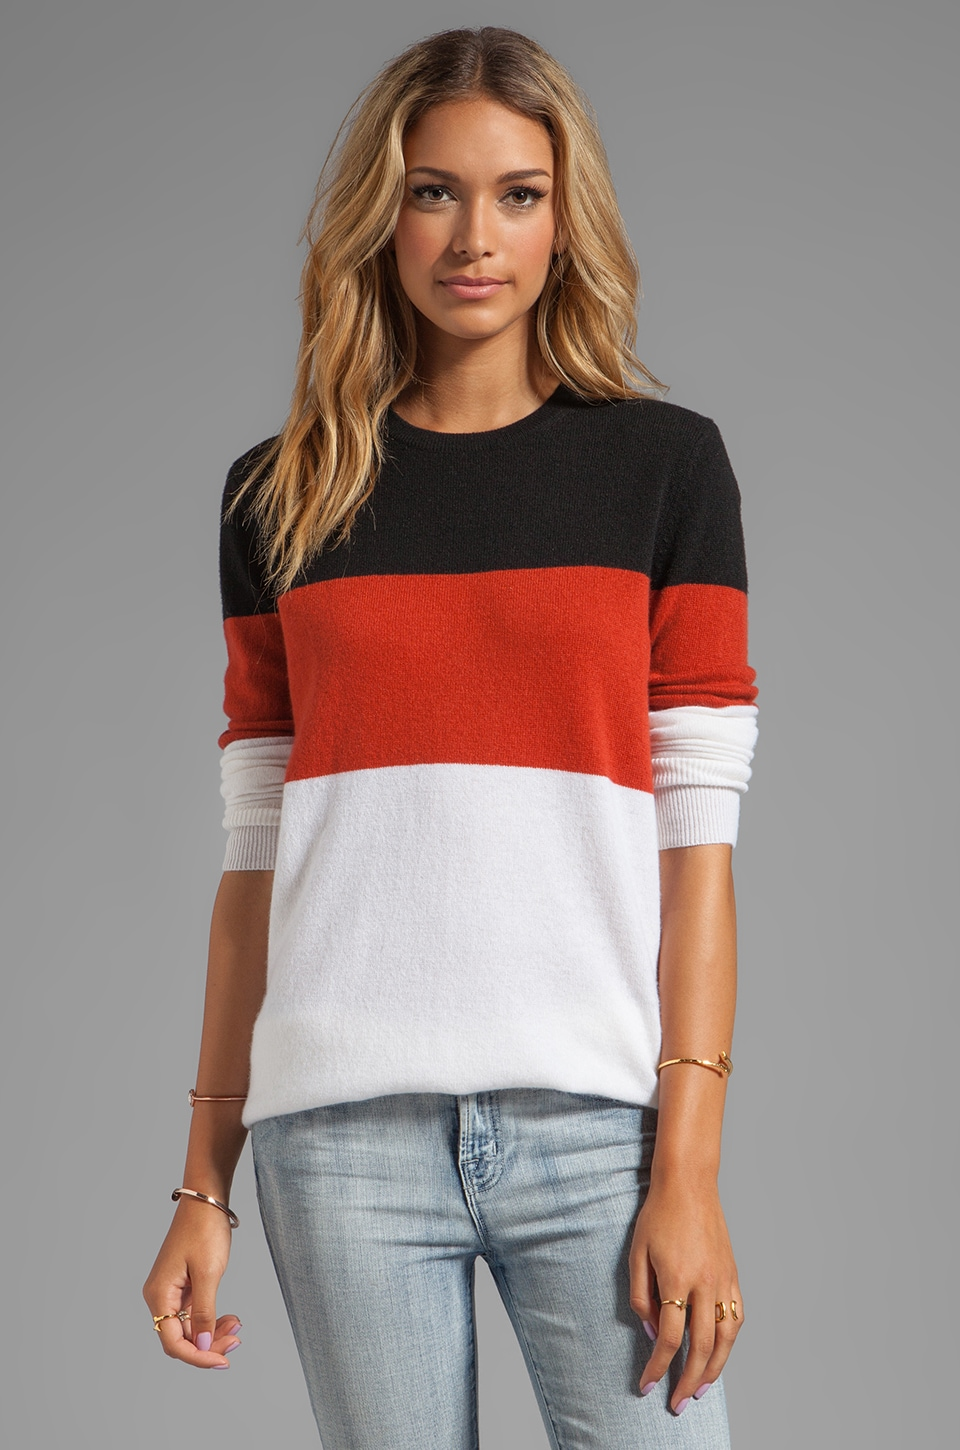 Equipment Rei Crew Neck Sweater in Ivory Multi